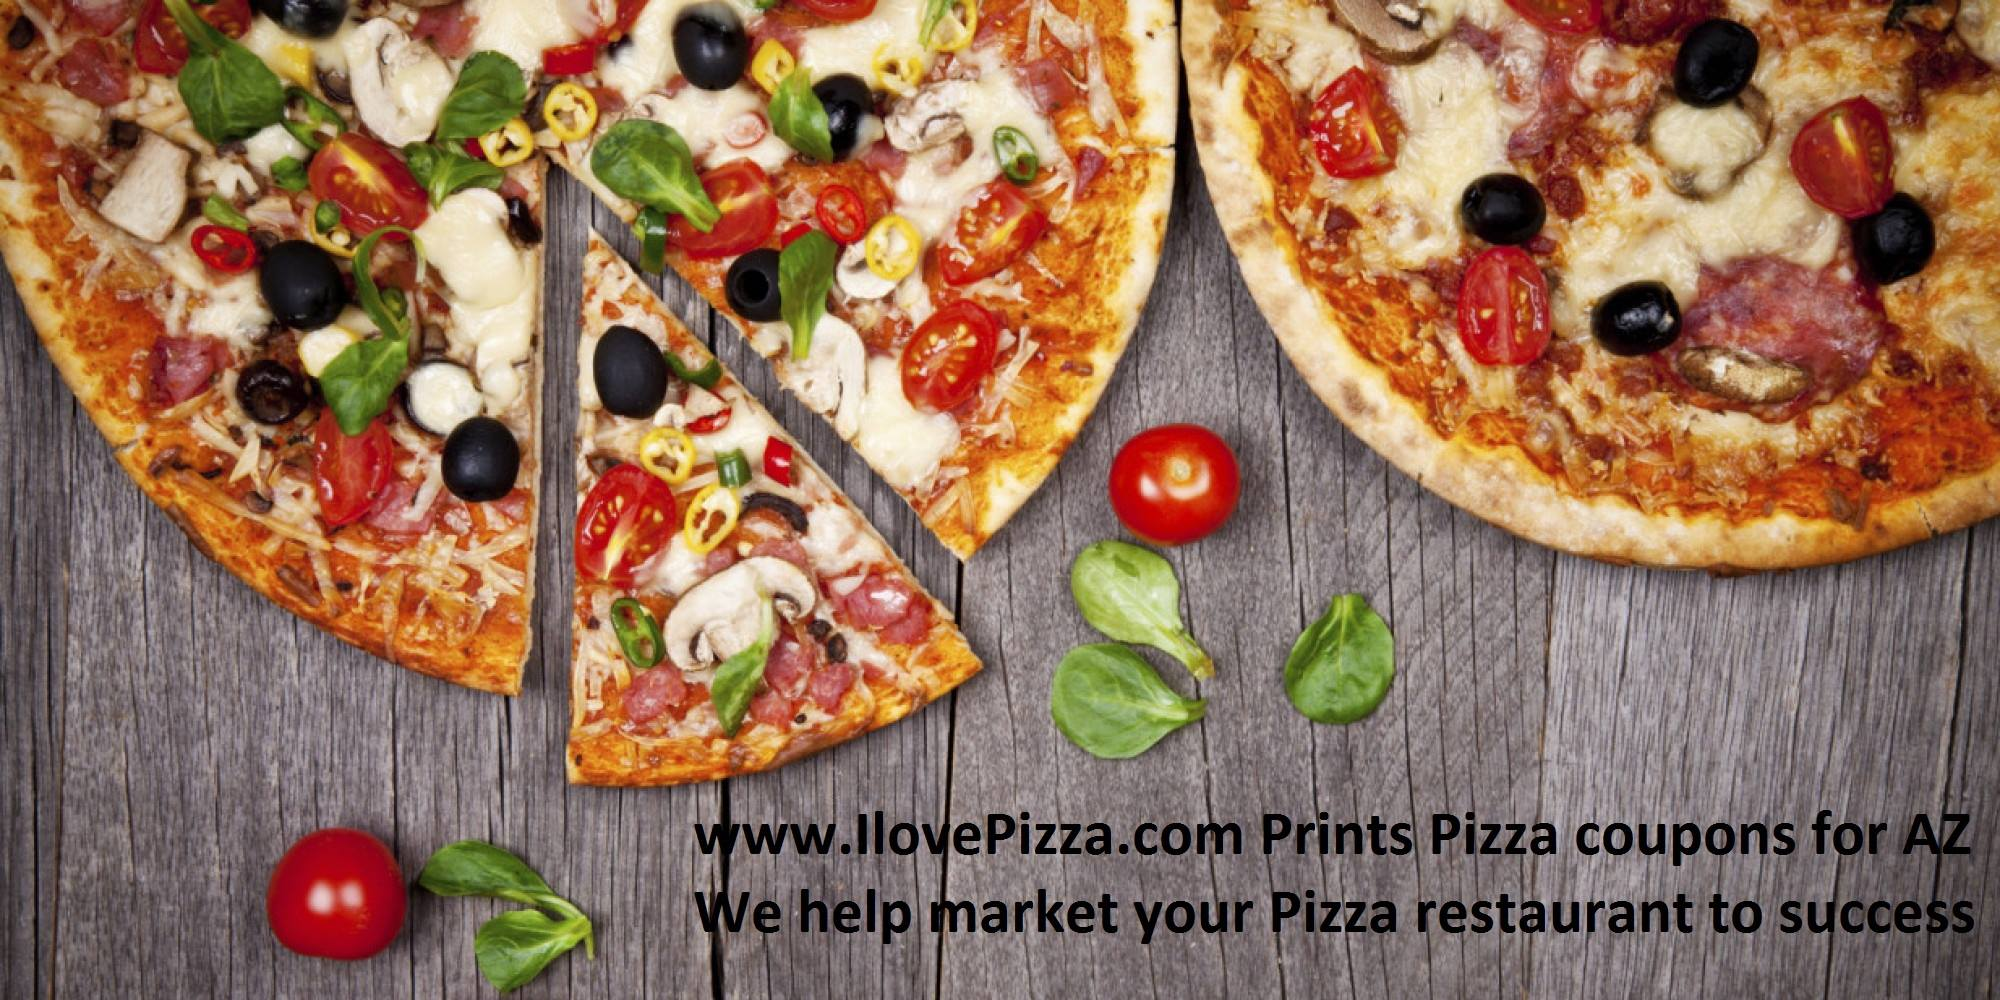 Pizza restaurant in Ahwatukee, Italian restaurant in Ahwatukee. Pizza coupons. www.ilovepizzas